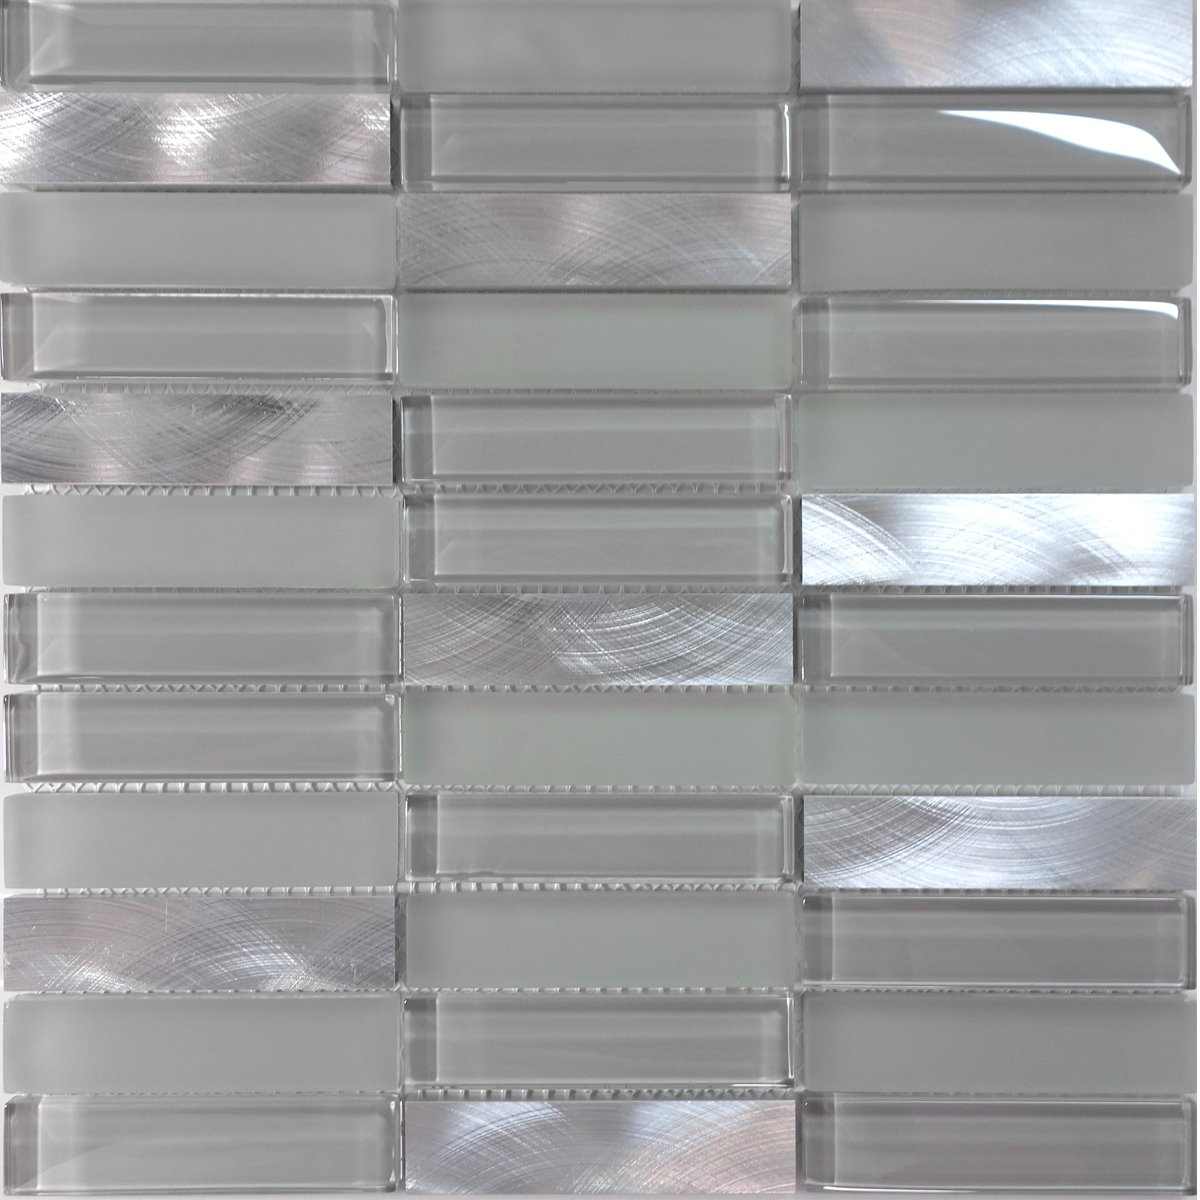 Modket TDH224MO Modern Gray Crystal Glass Blended Metallic Aluminum and Matted Glass Mosaic Tile Backsplash